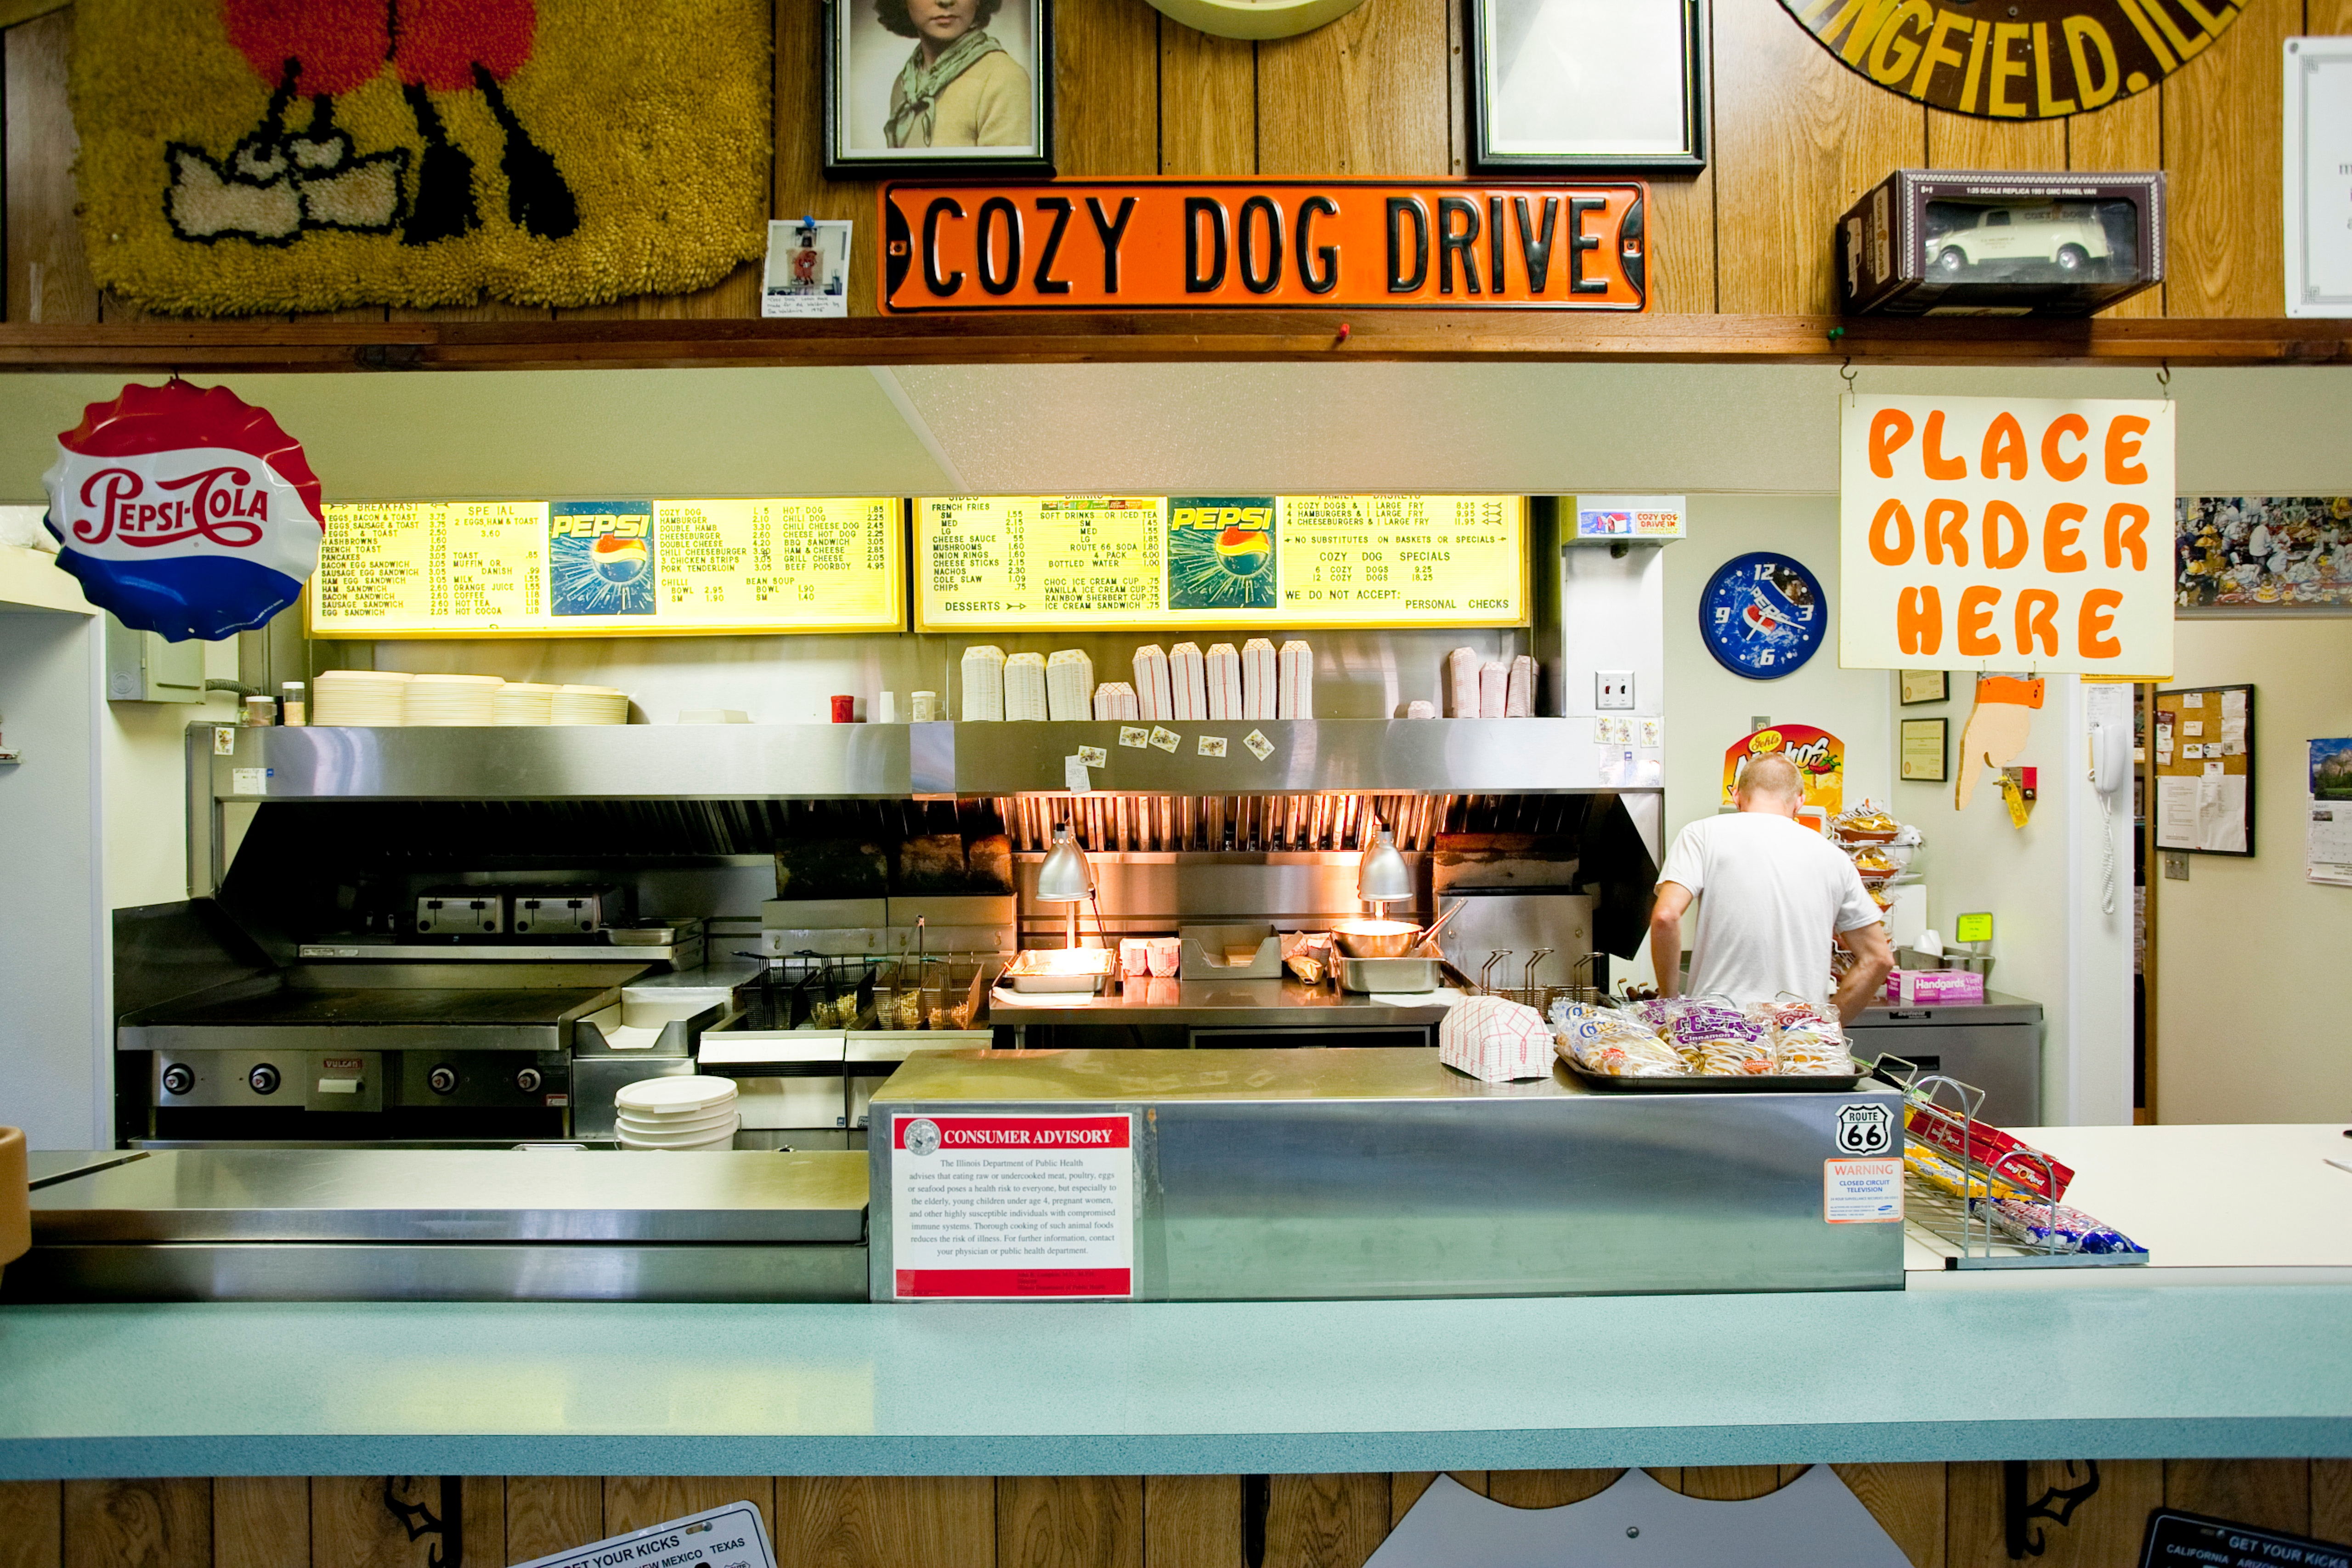 sites & attractions - cozy dog drive in